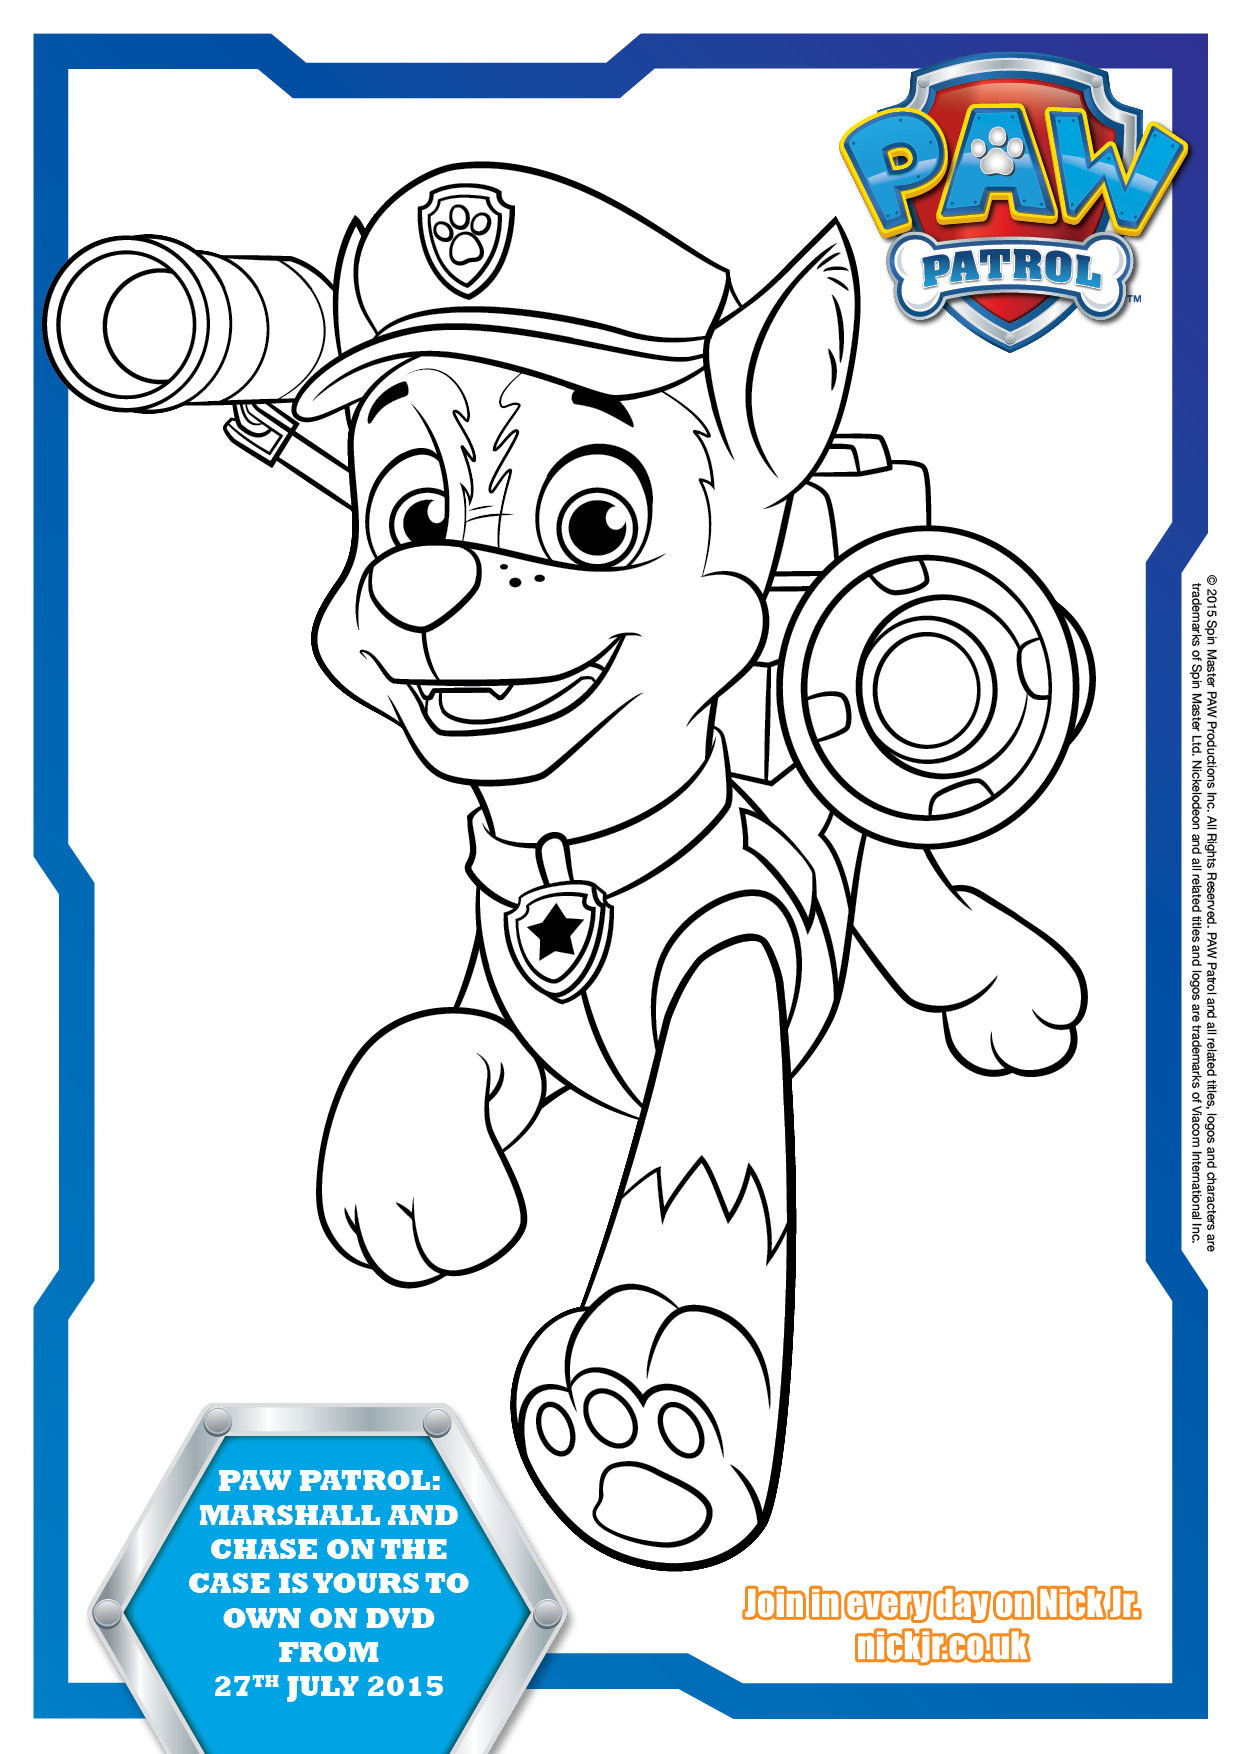 Candid image pertaining to paw patrol printable pictures